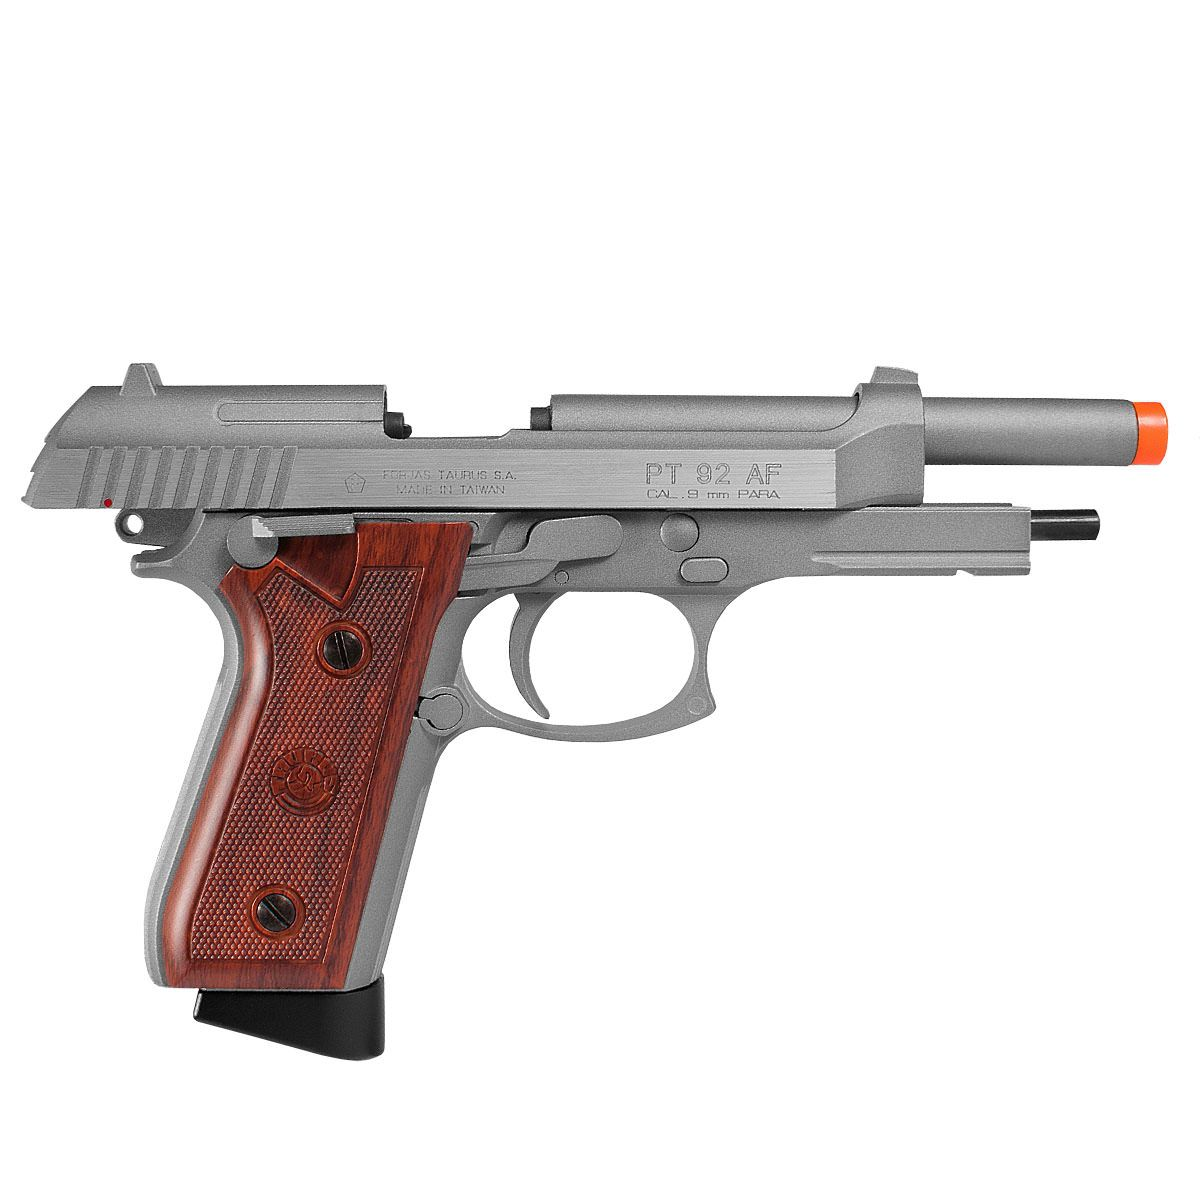 Pistola Airsoft Taurus PT92 Automatic Gbb Co2 Full Metal - Cybergun - FRETE GRÁTIS